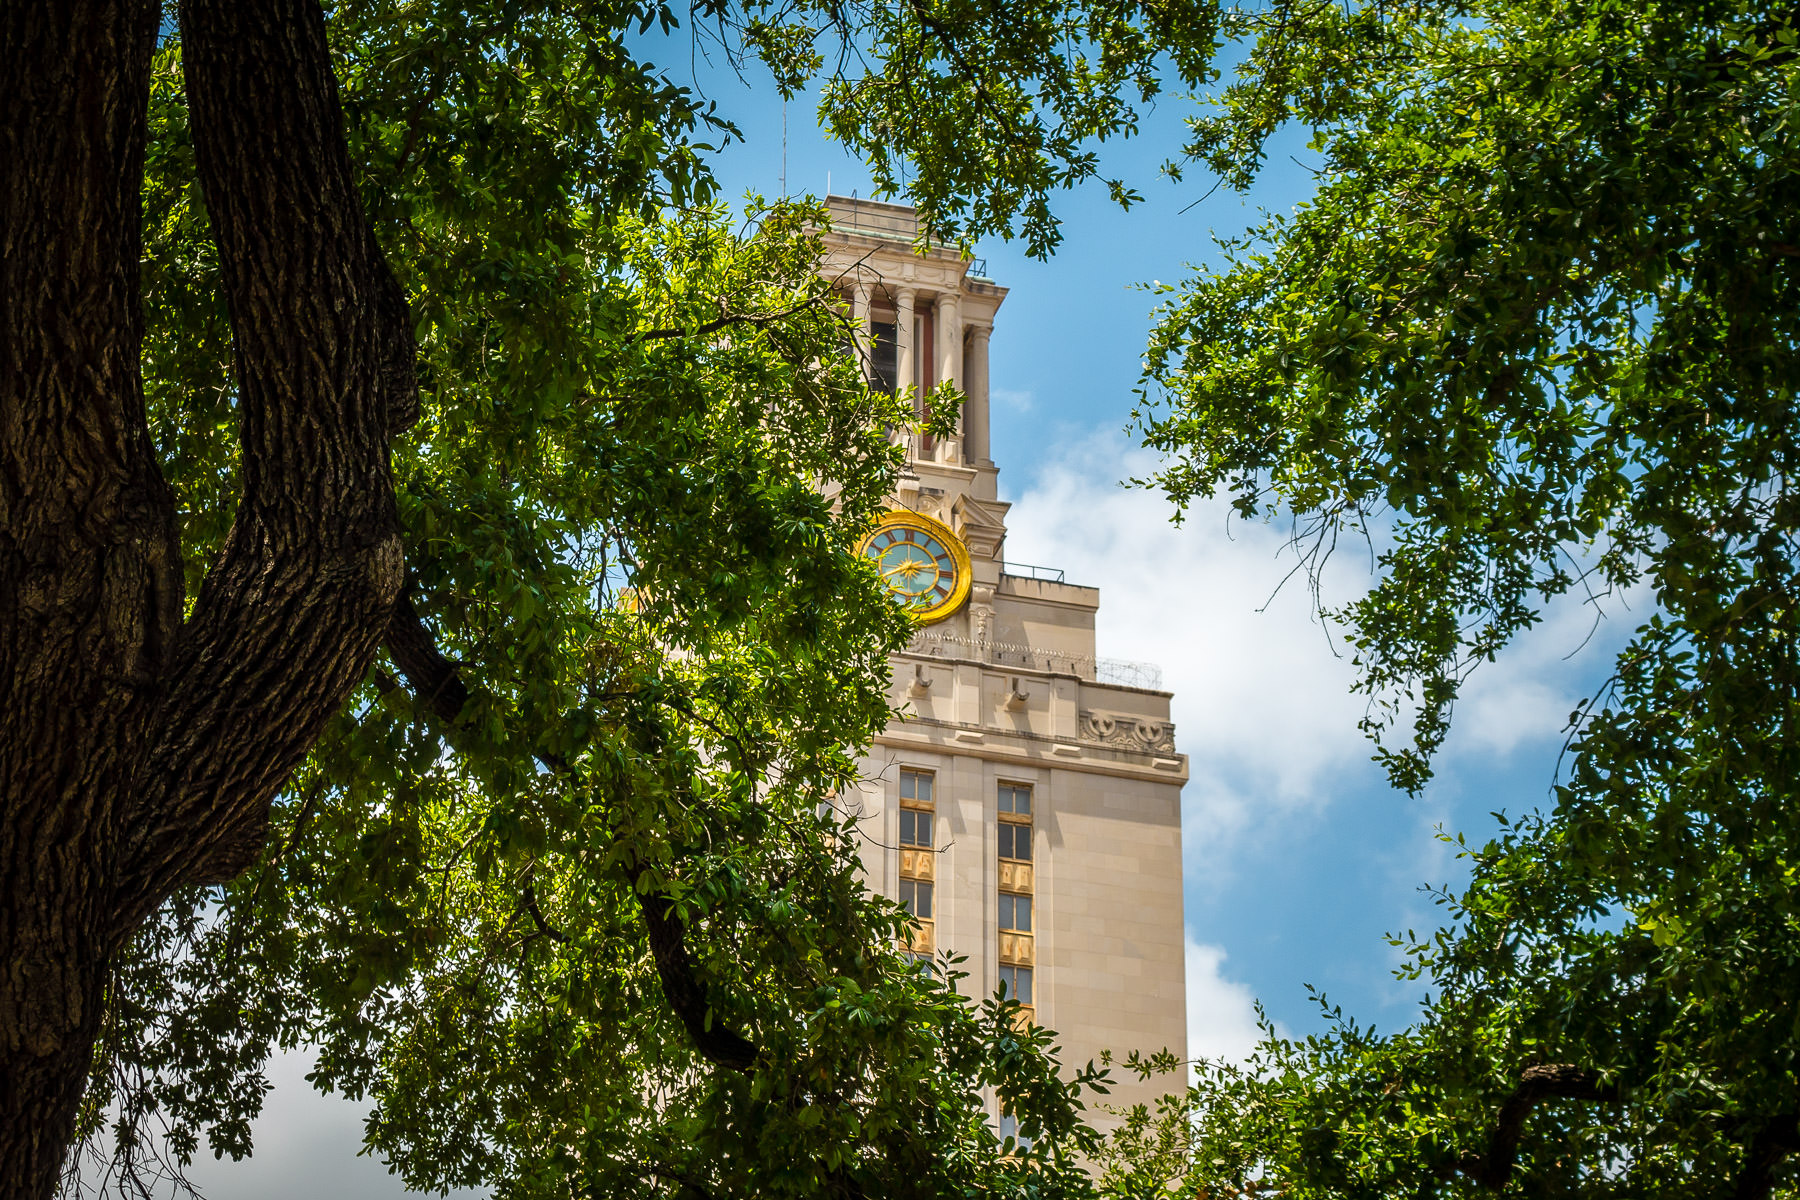 The 307-foot-tall Main Building at the University of Texas at Austin appears to hide behind a nearby grove of trees.